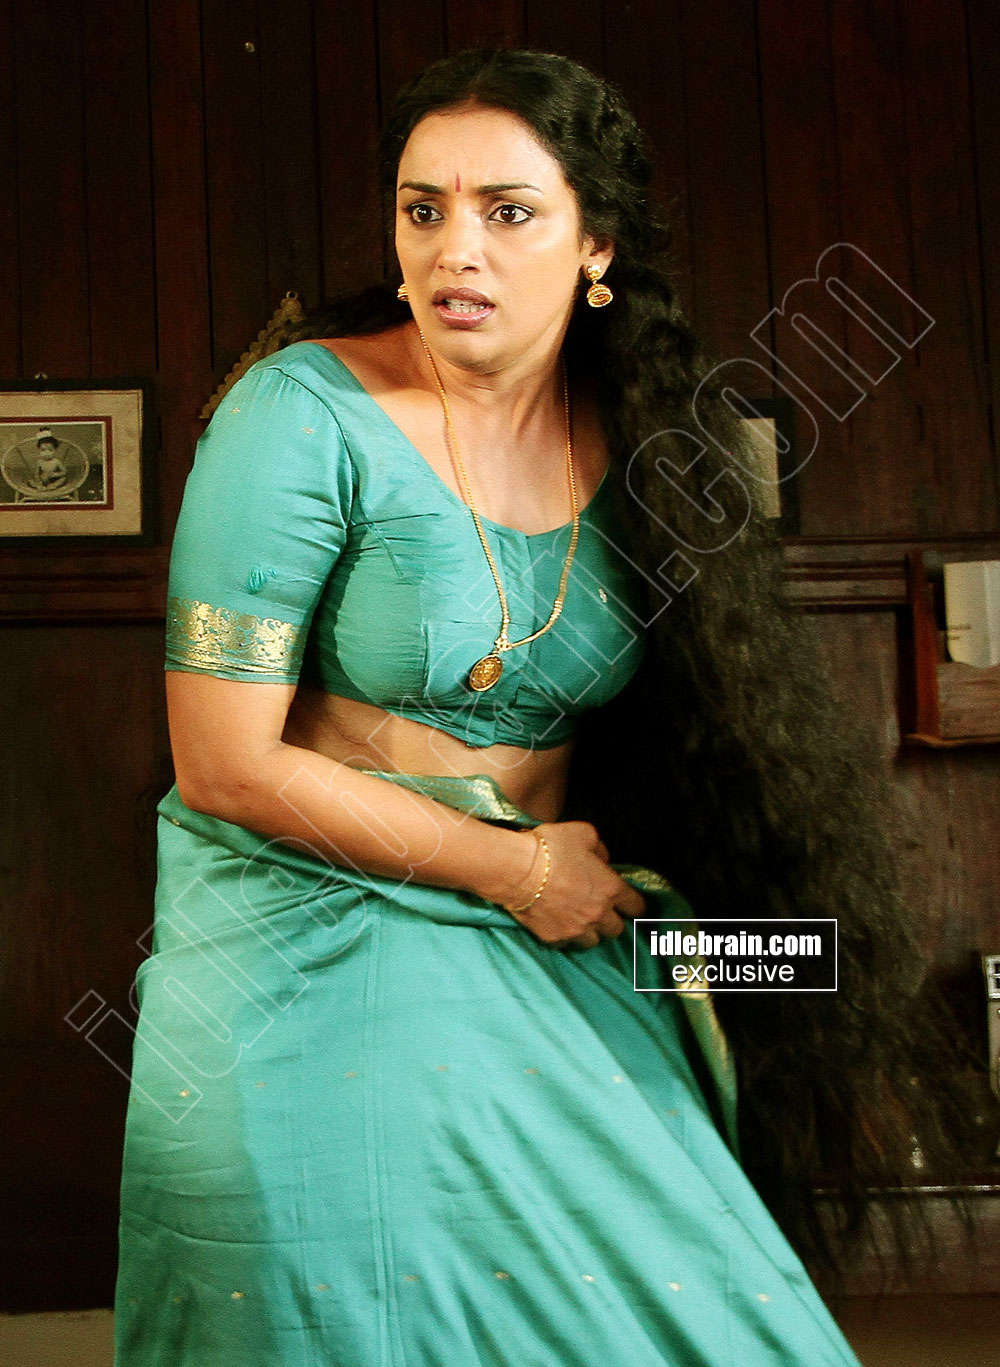 Hot Item Girls Mallu Actress Swetha Menon Masala Pics-2701